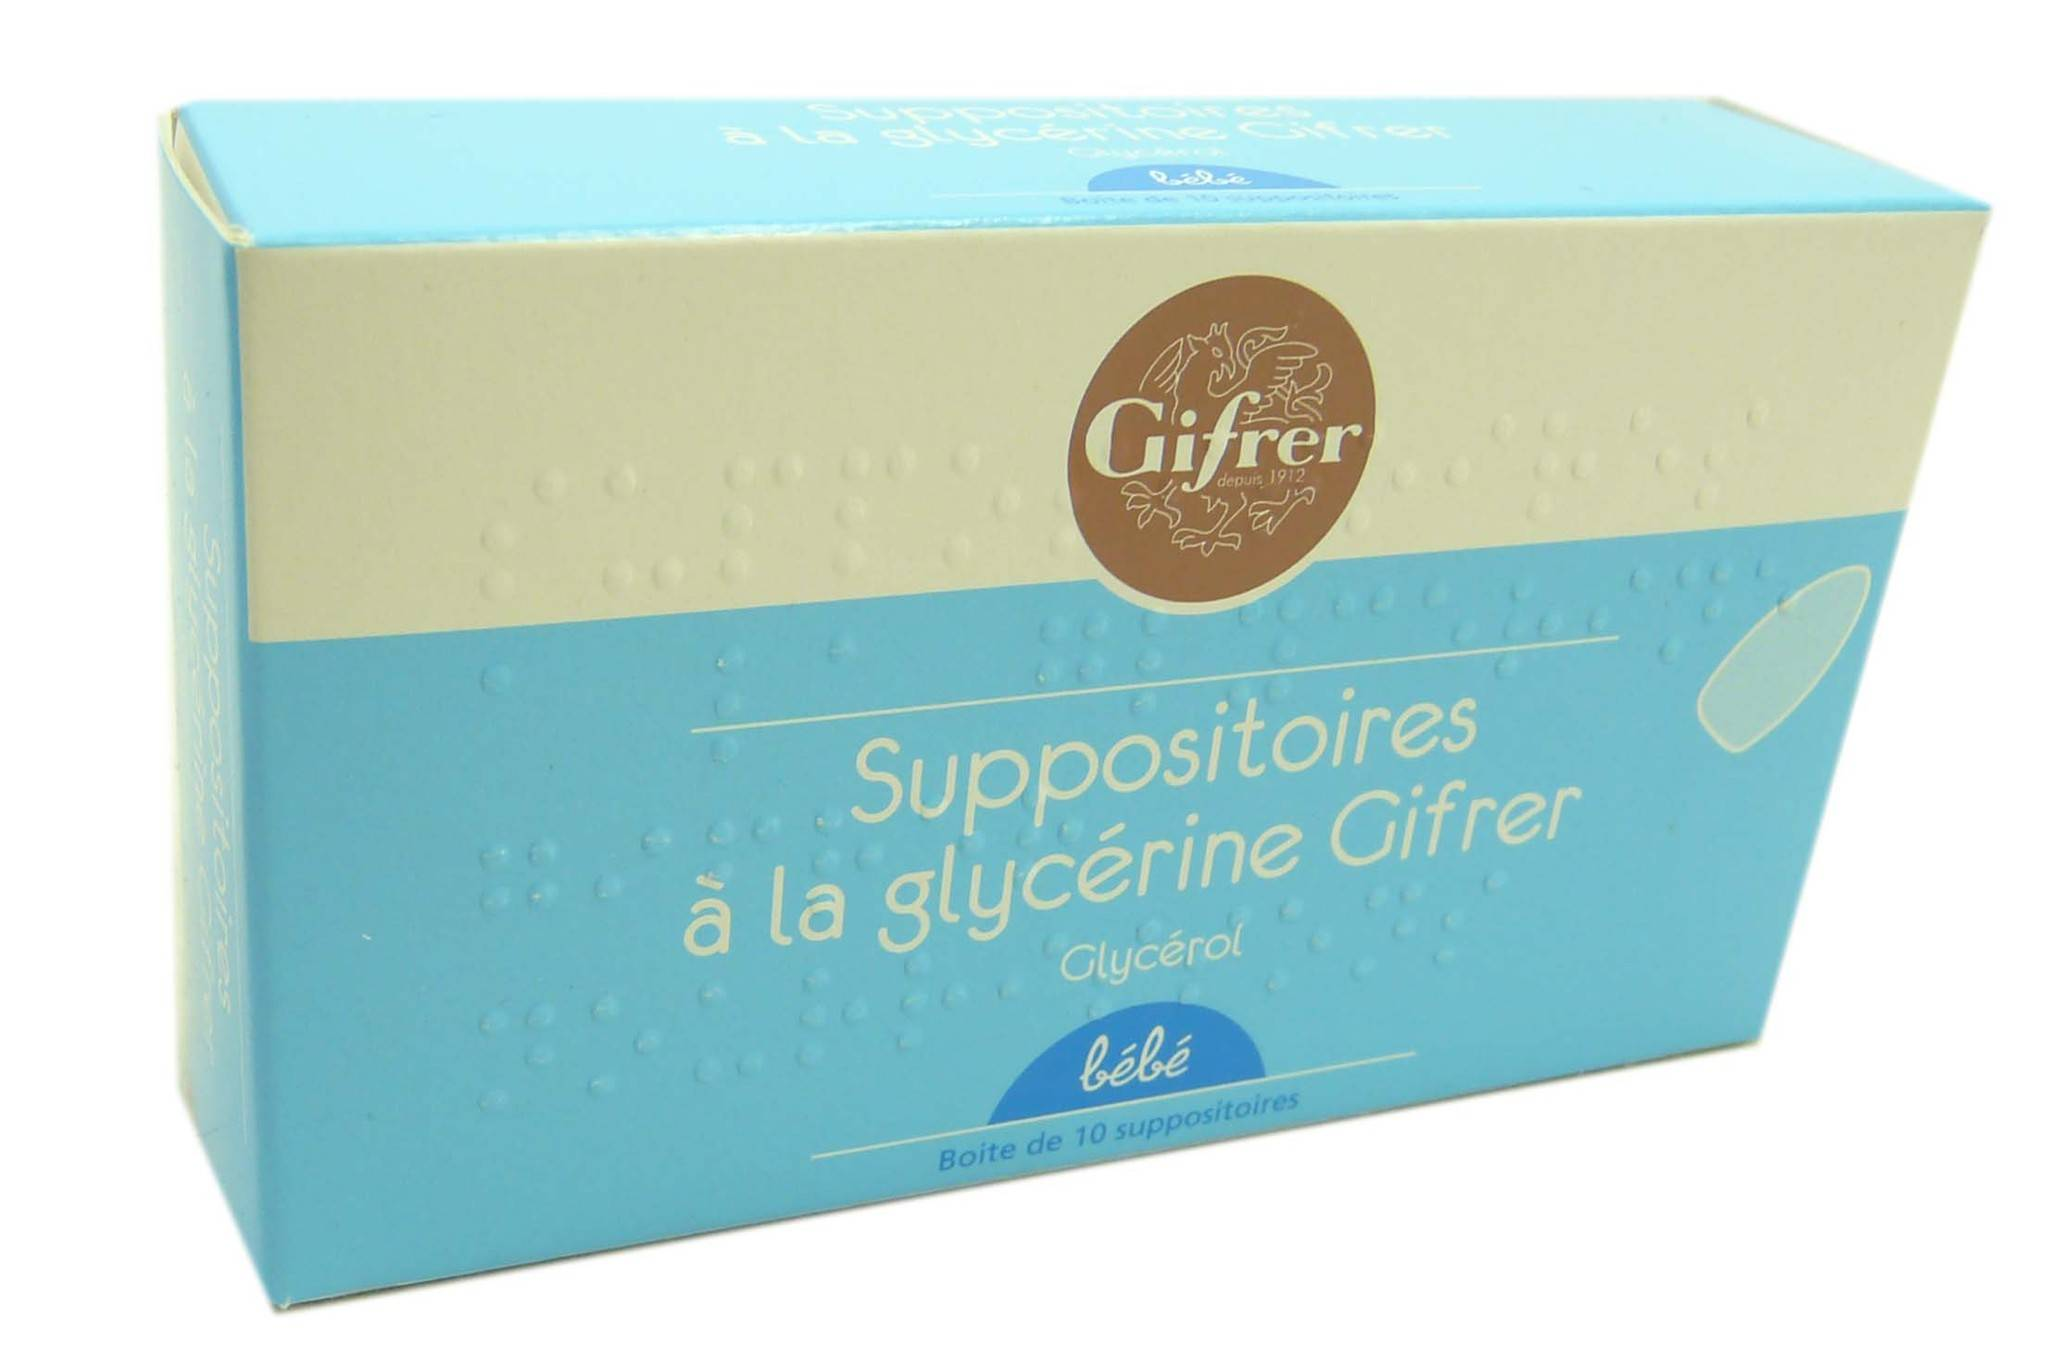 Gifrer suppositoires a la glycerine bebe bt10